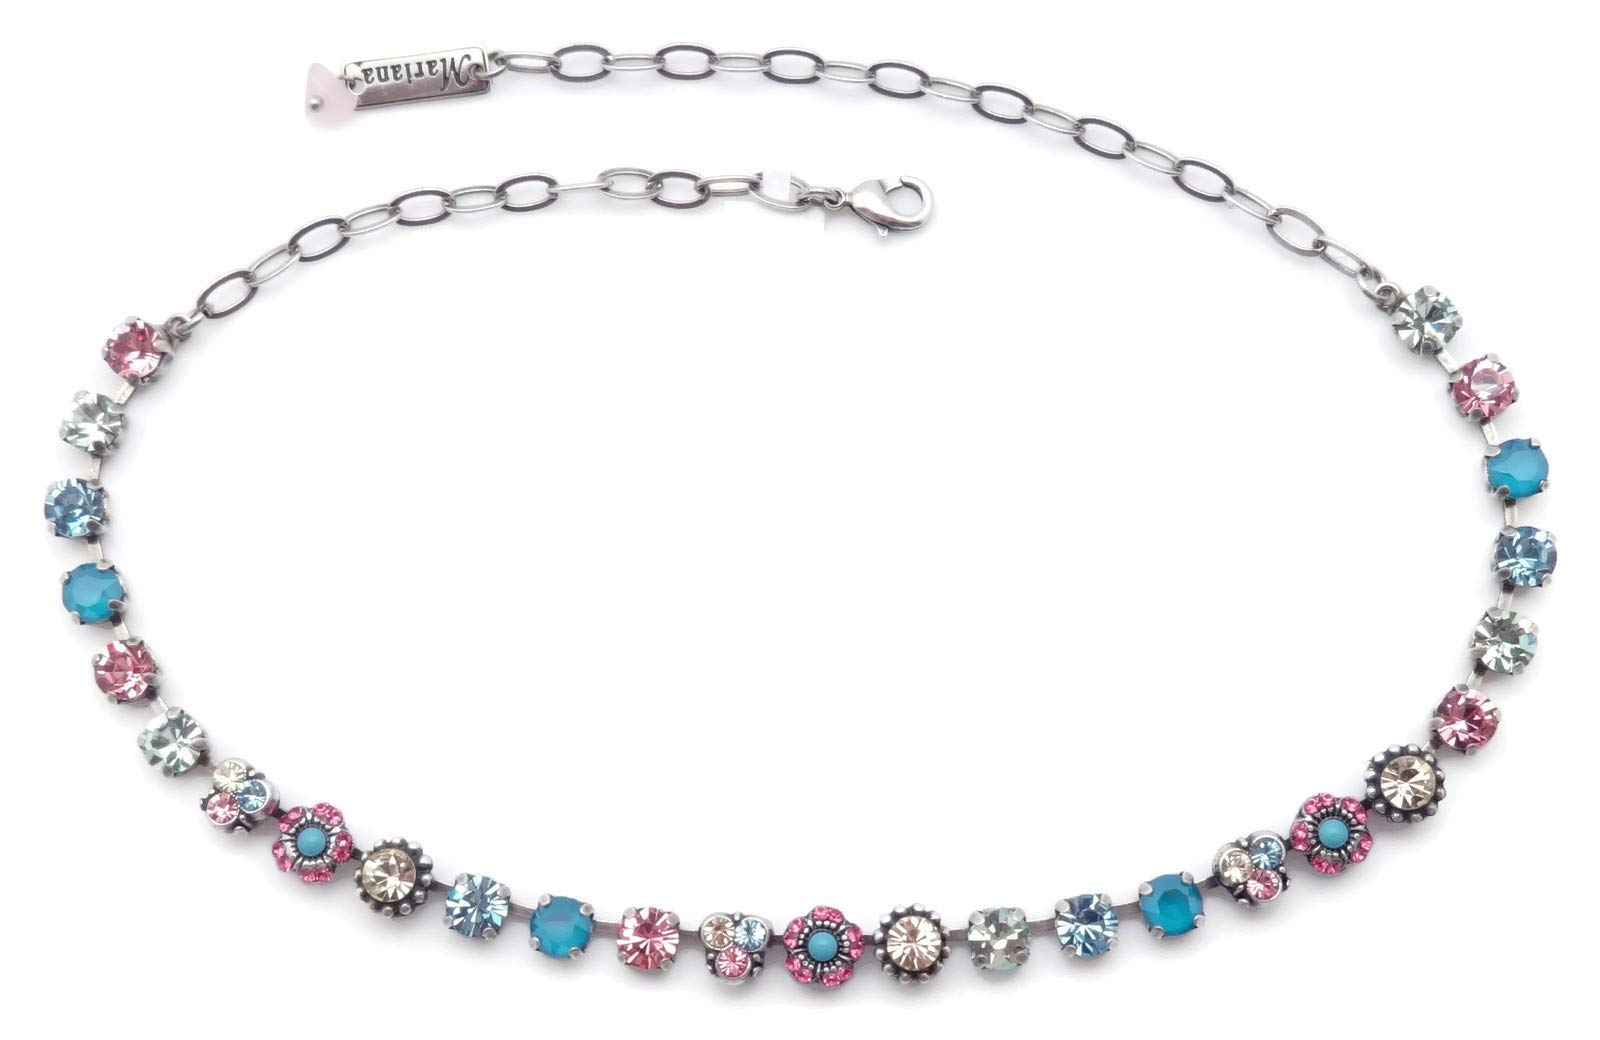 Mariana Spring Flowers Swarovski Crystal Silvertone Necklace Blue Pink Yellow Green Mix Mosaic 125 by Mariana (Image #2)